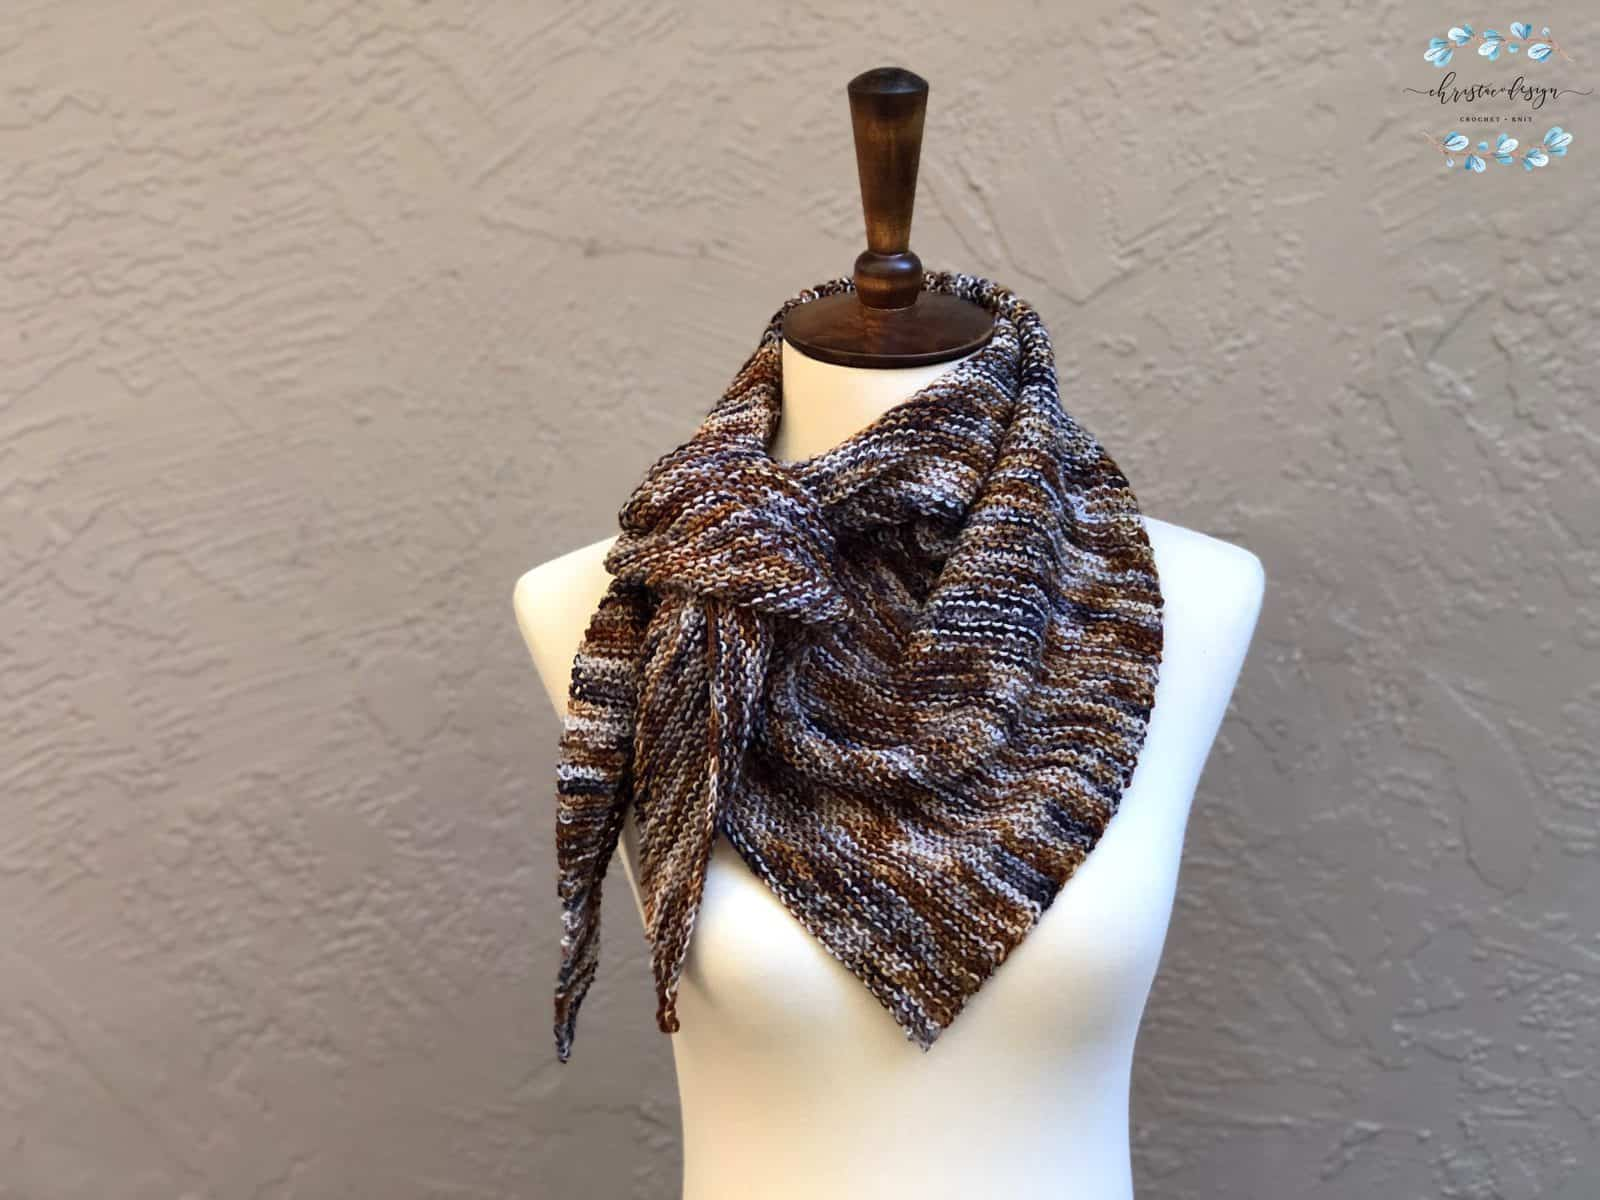 Tostata Scarf a Free Knitting Pattern